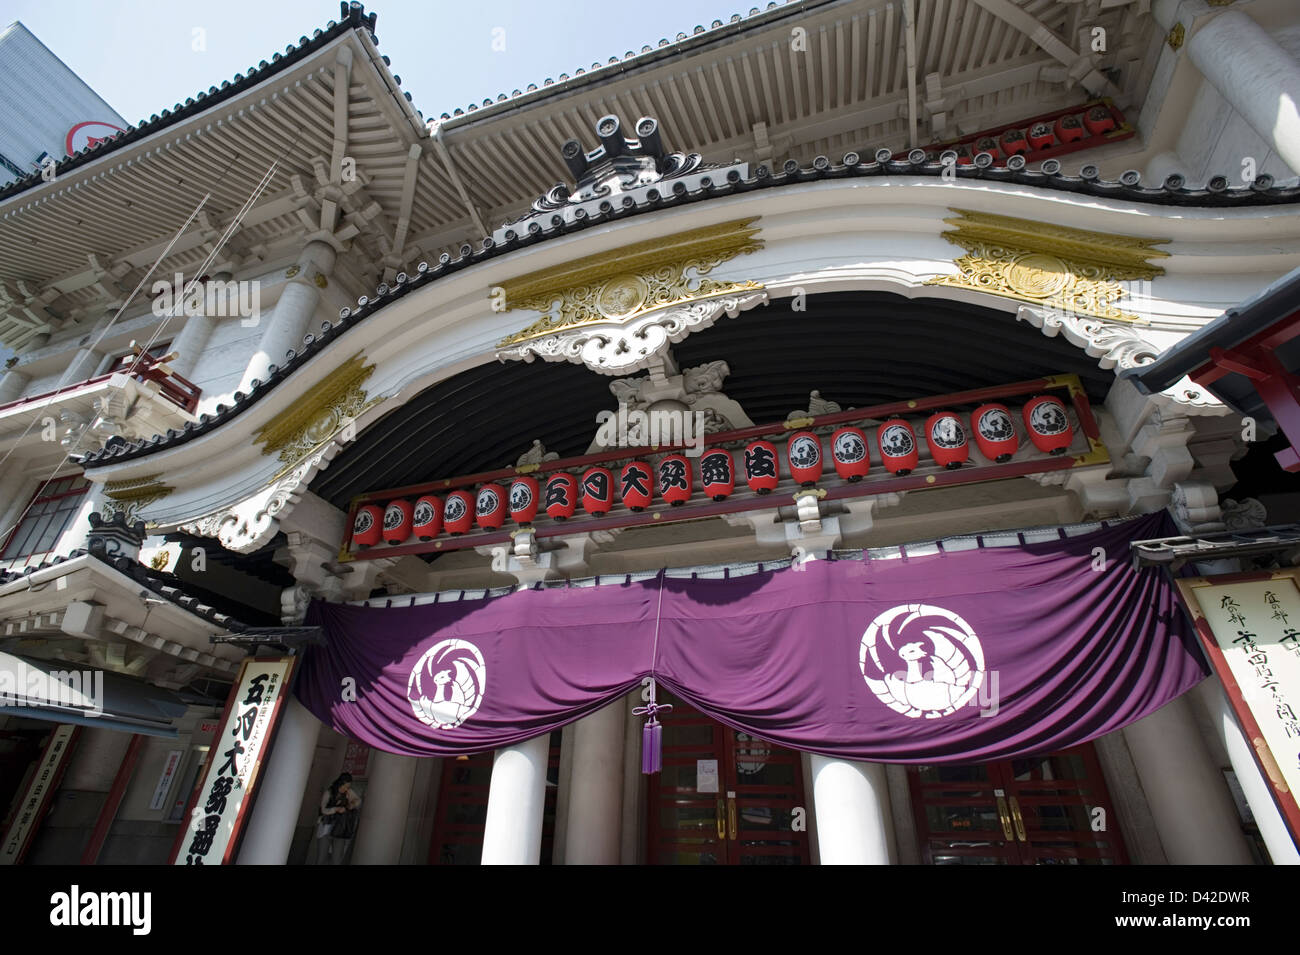 The old Kabukiza (Kabuki Theater) in Ginza, Tokyo built in 1924. It was raized in spring 2010 for replacement with - Stock Image